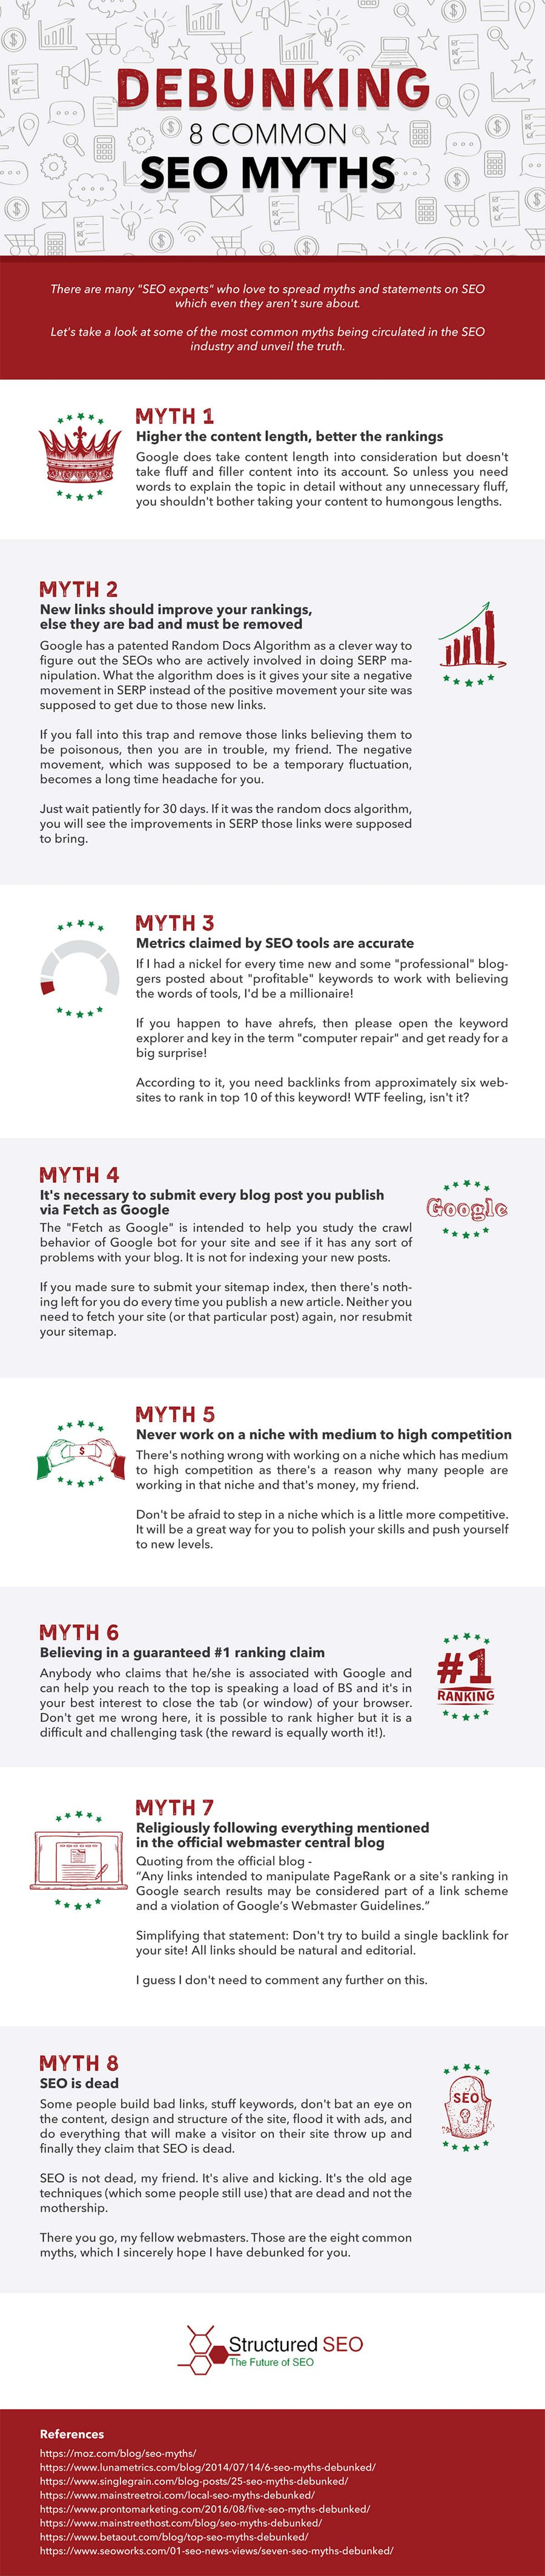 Debunking 8 Common SEO Myths [Infographic] | Social Media Today